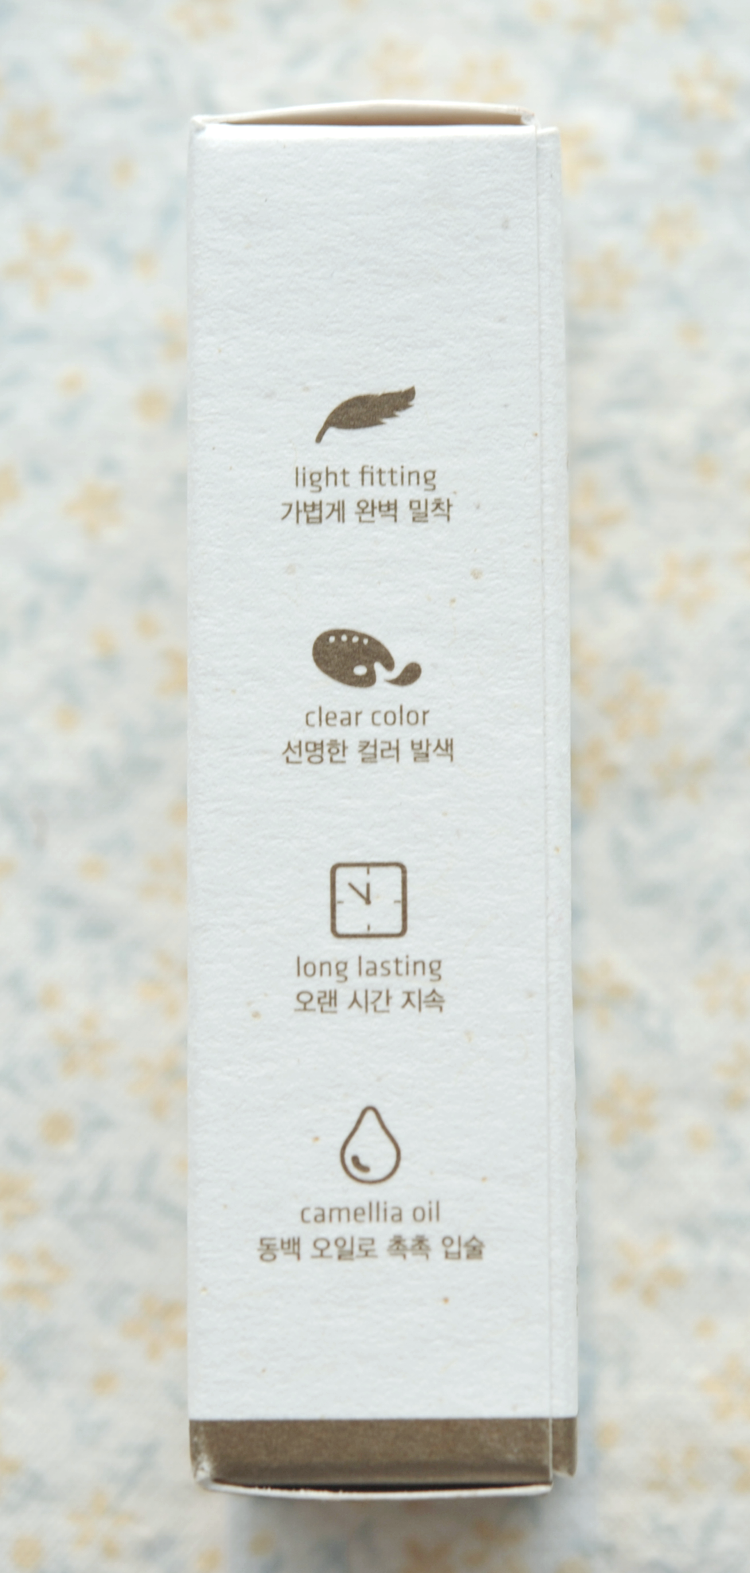 Innisfree Real Fit Lipstick #8 Rosy Latte Cup - Product Packaging, Korean Makeup Review